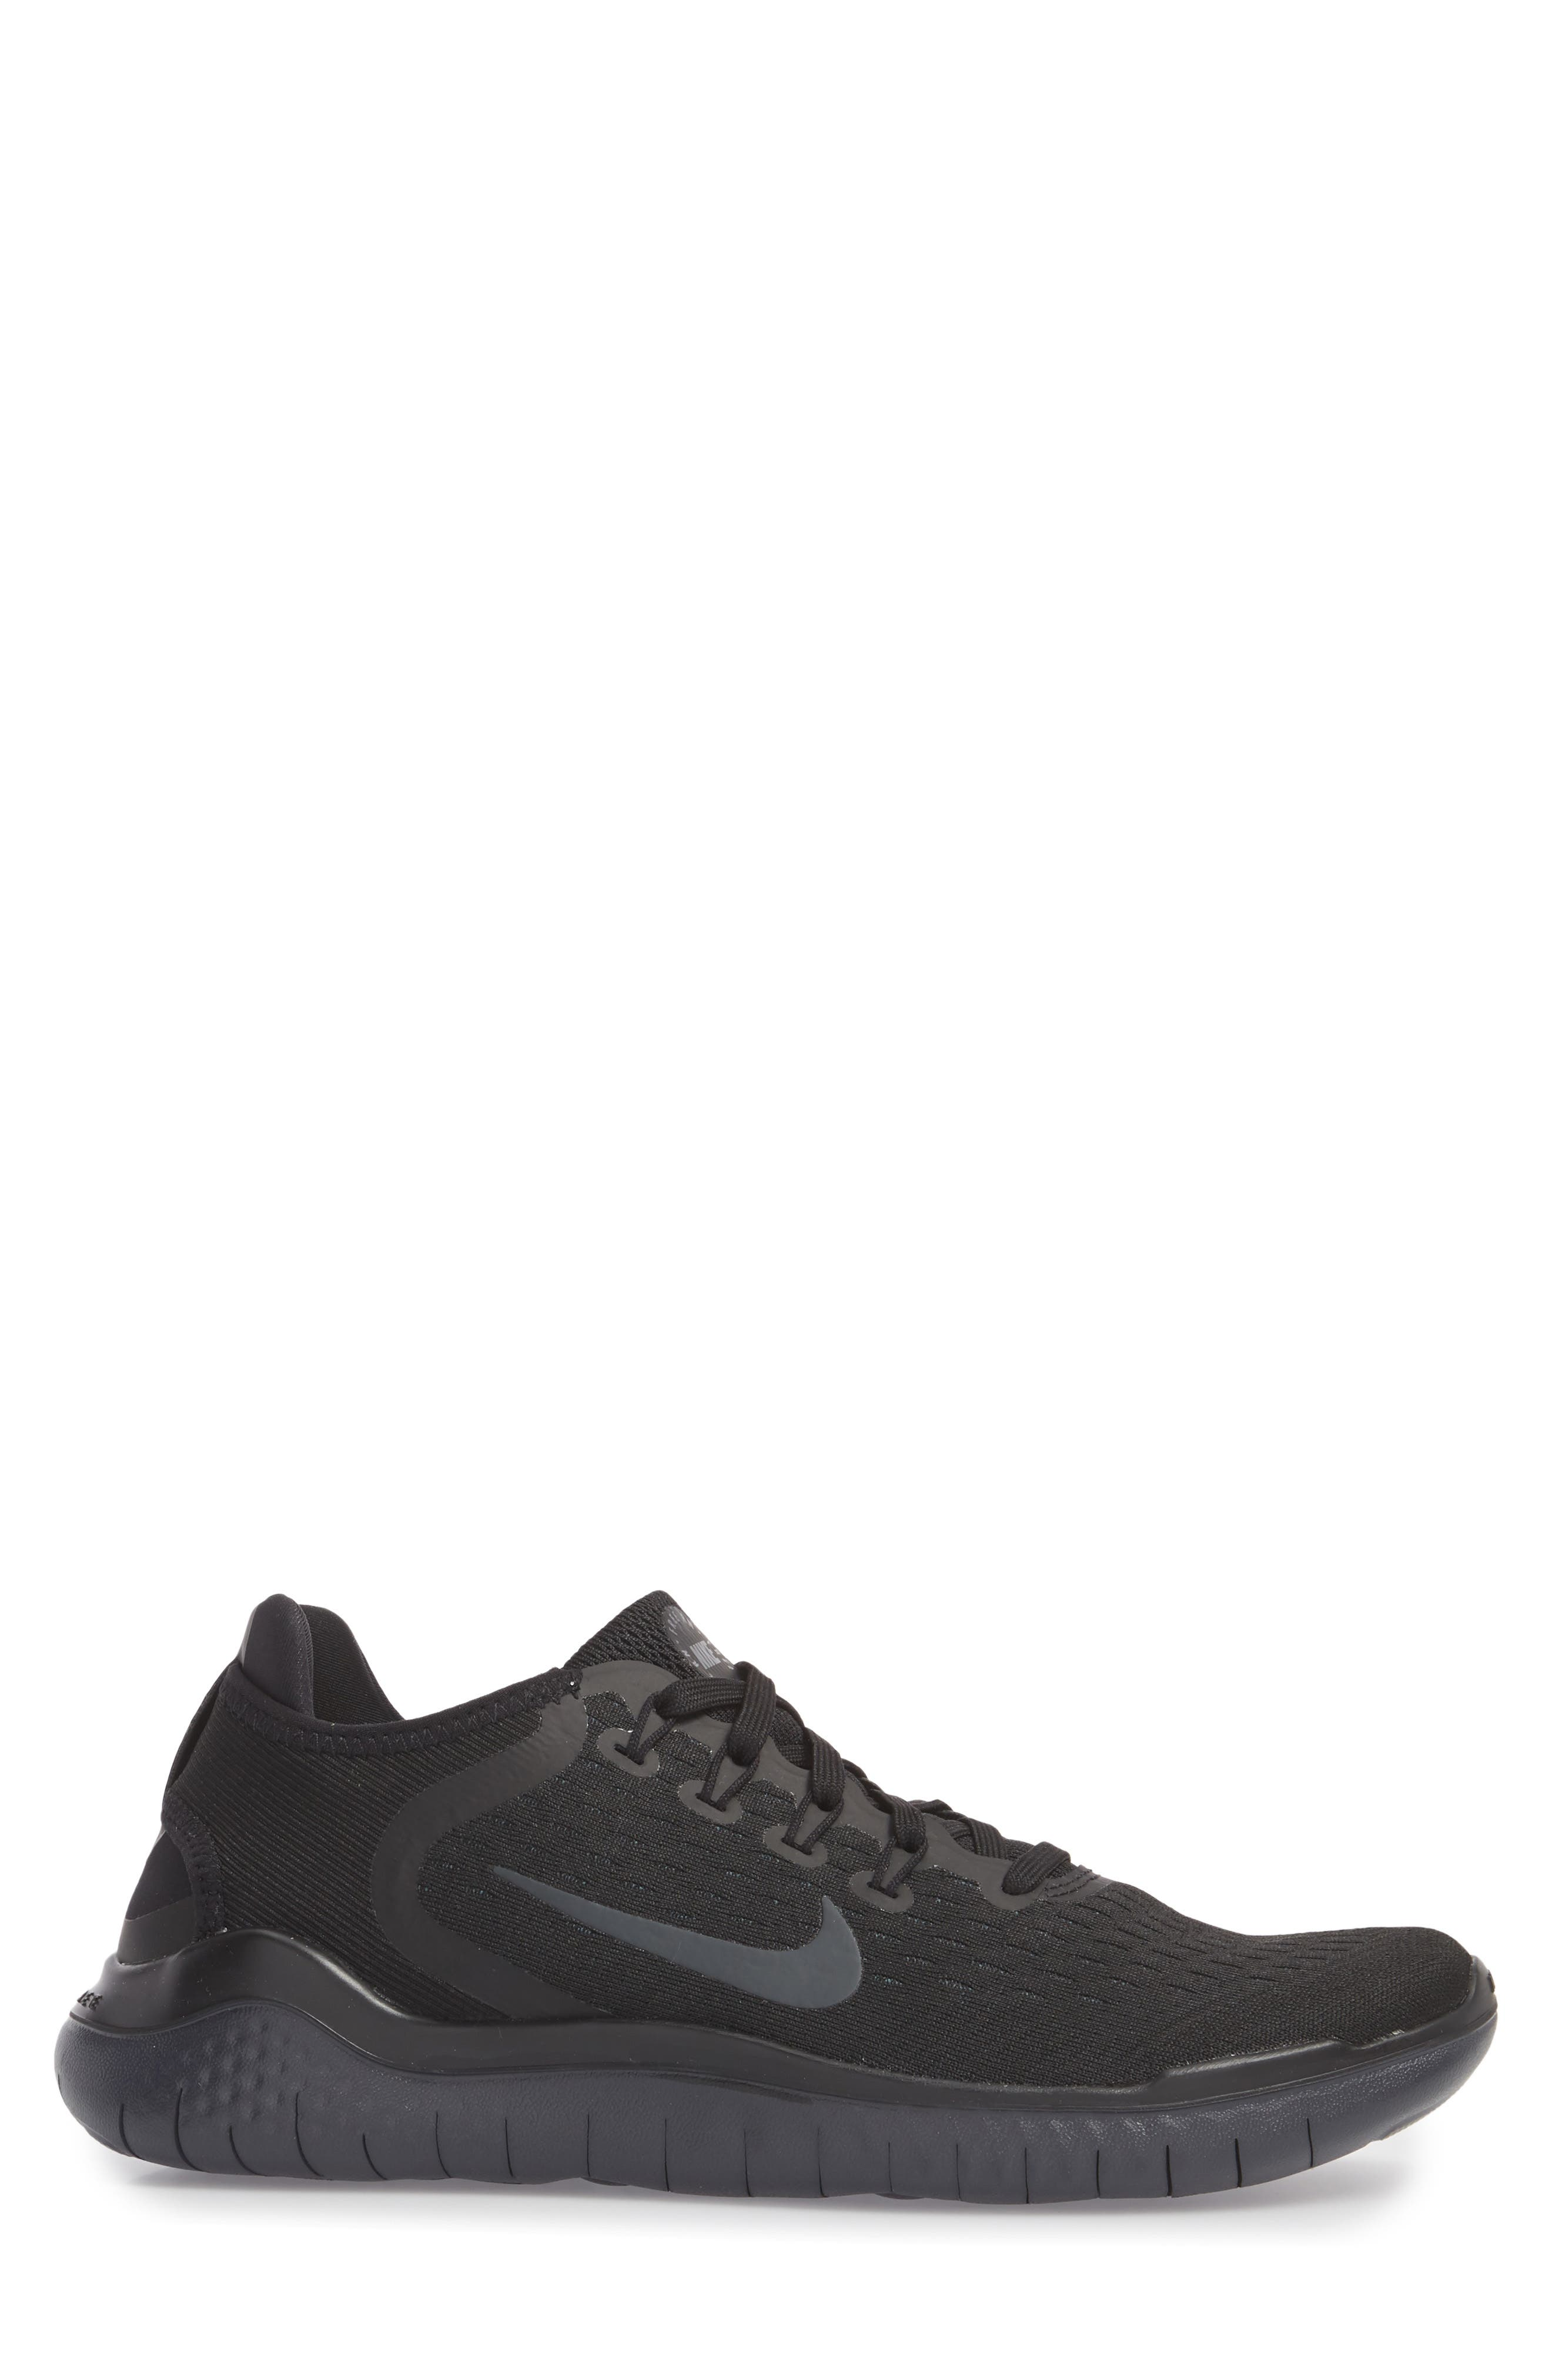 Free RN 2018 Running Shoe,                             Alternate thumbnail 3, color,                             002